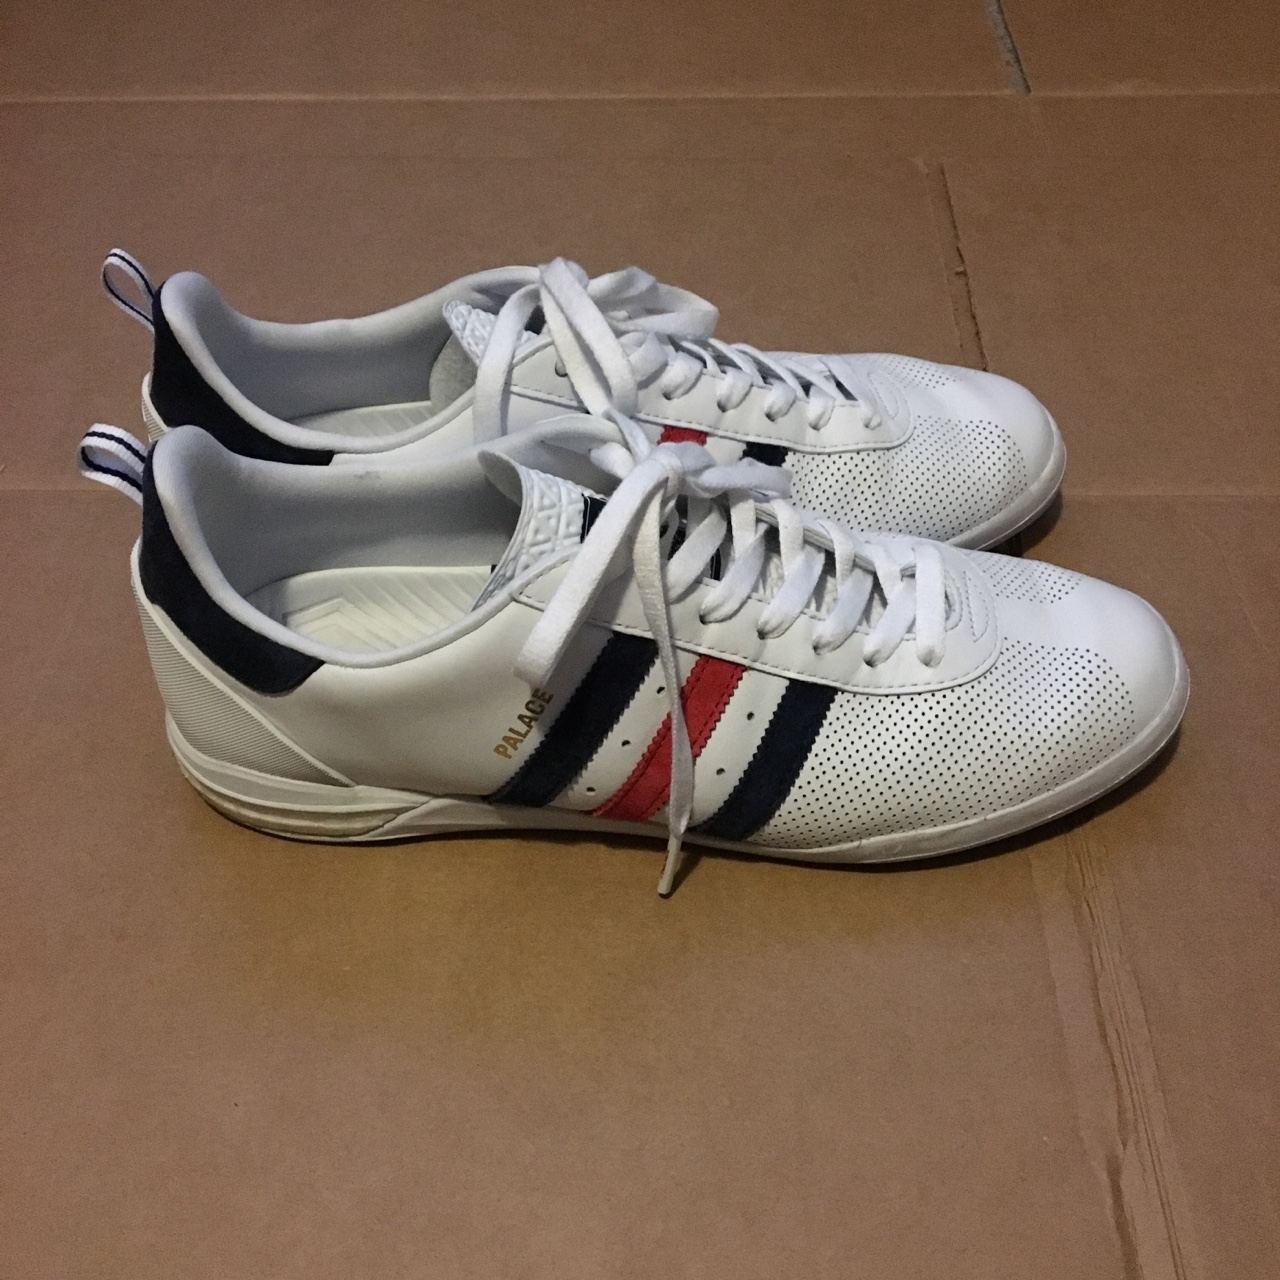 Adidas x Palace indoor shoes. Price is firm. These Depop